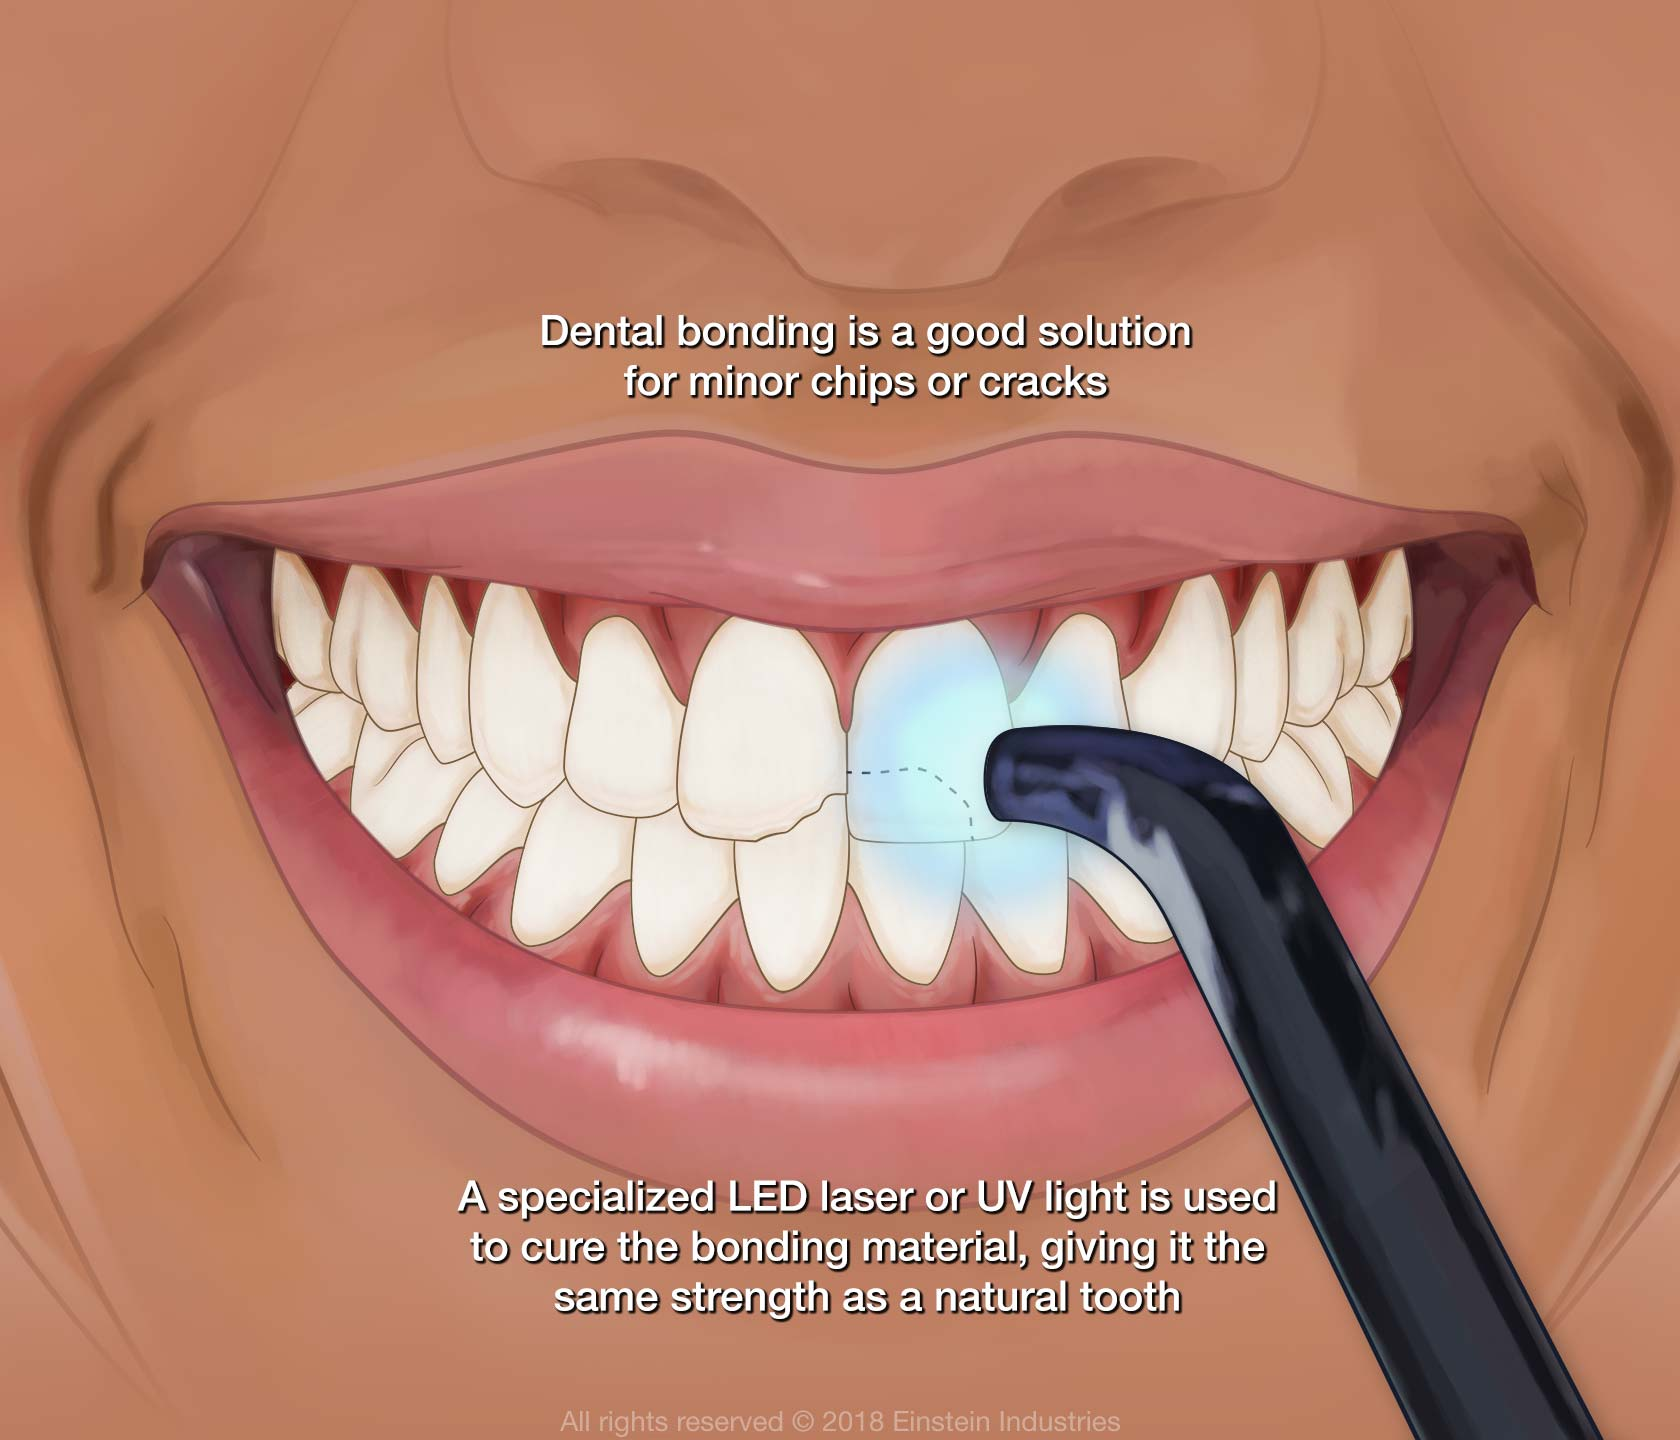 How dental bonding treatment works